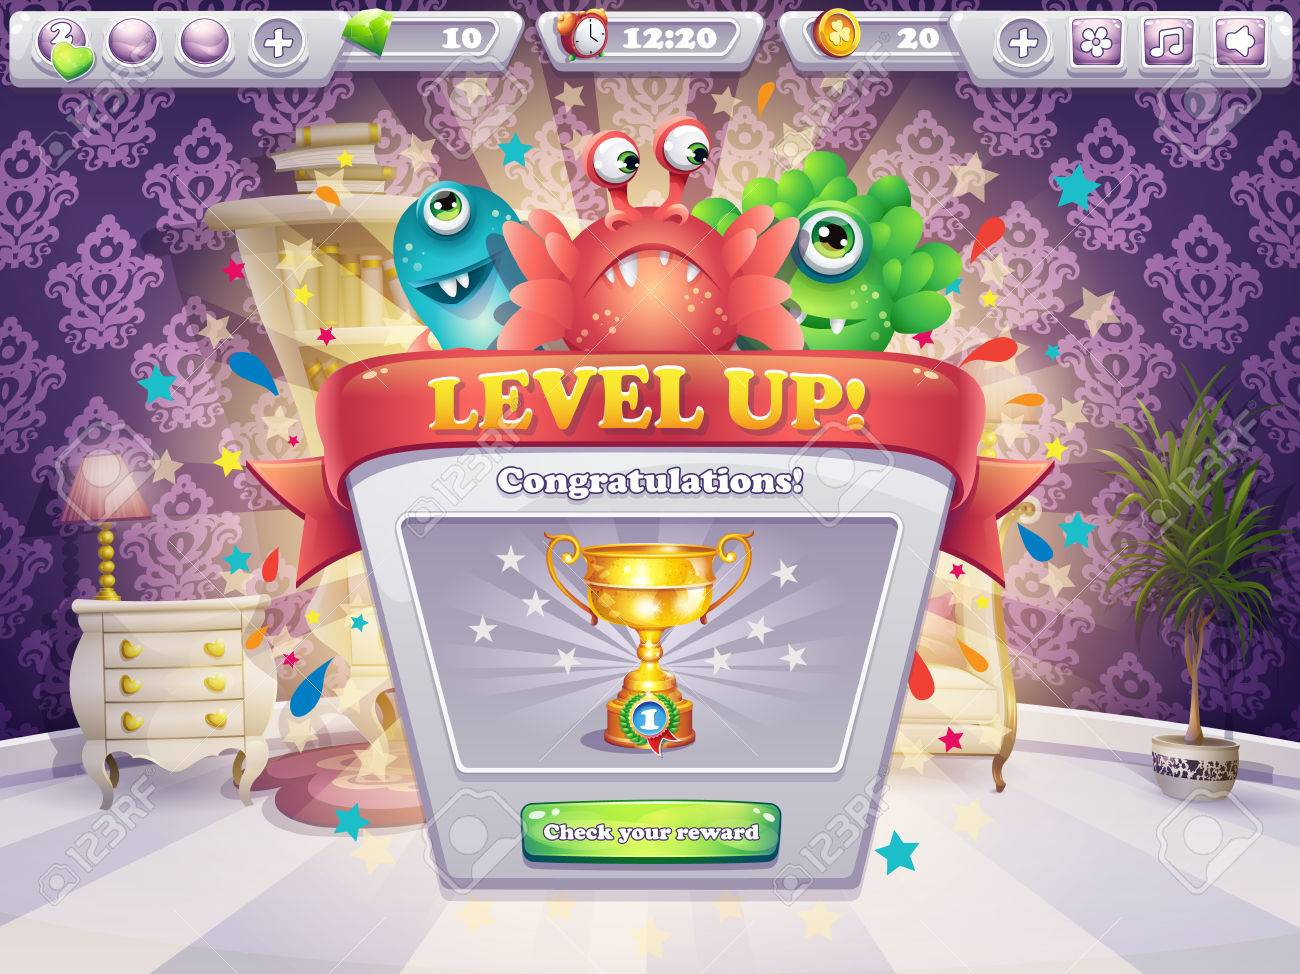 Example of the game window receiving award - 40921072